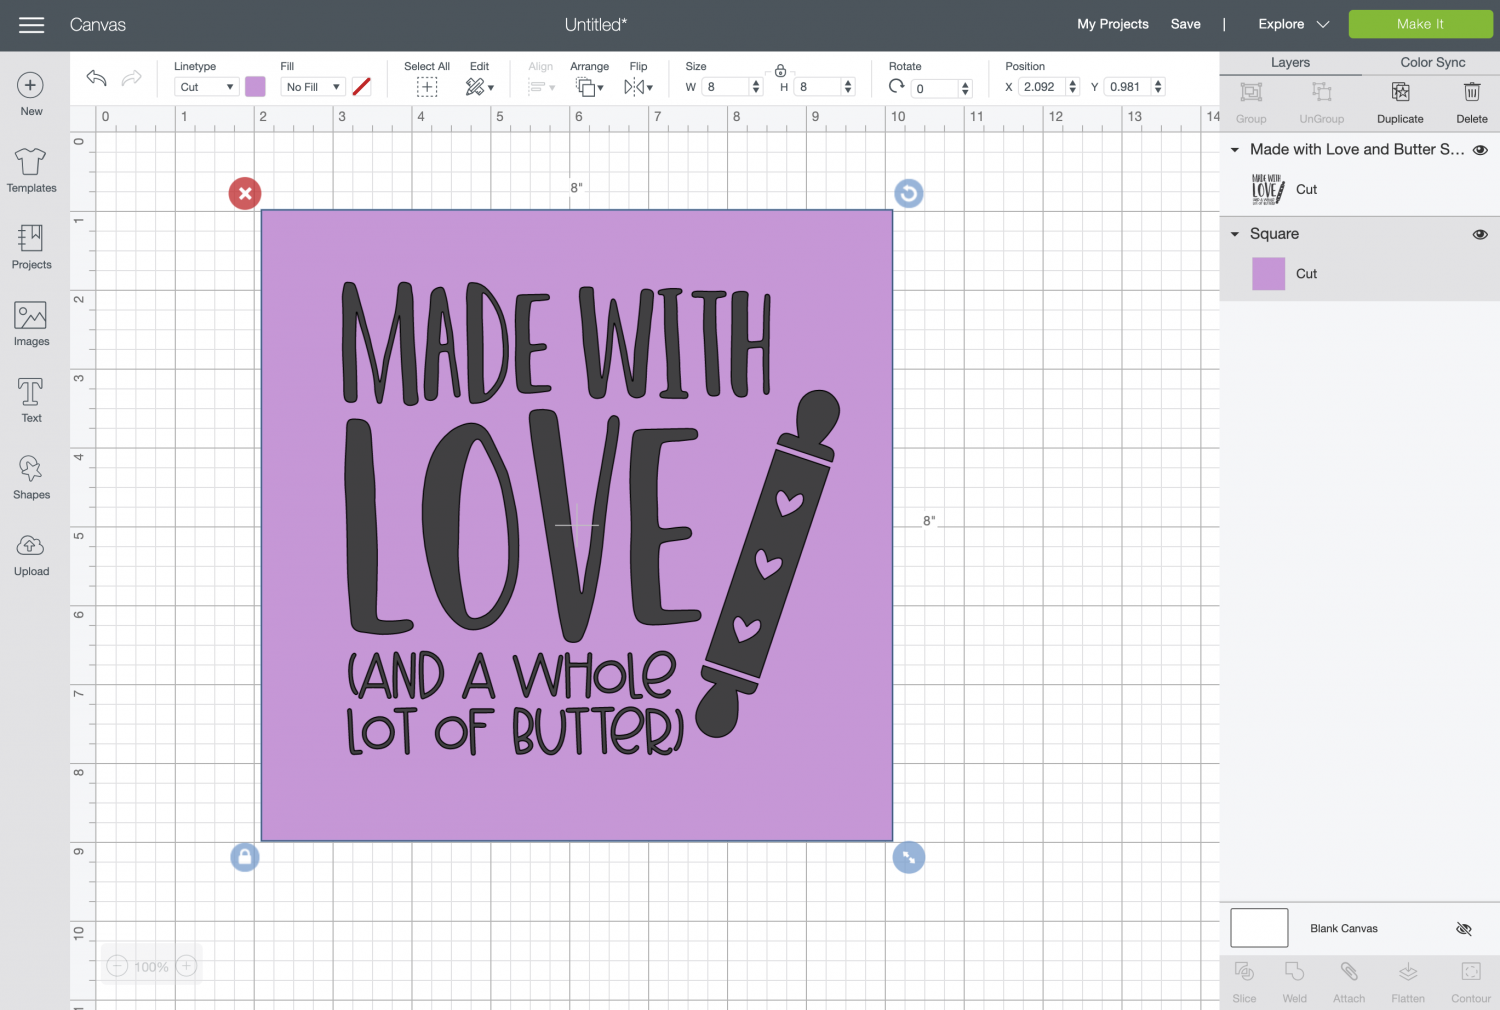 Cricut Design Space: Image and square together.